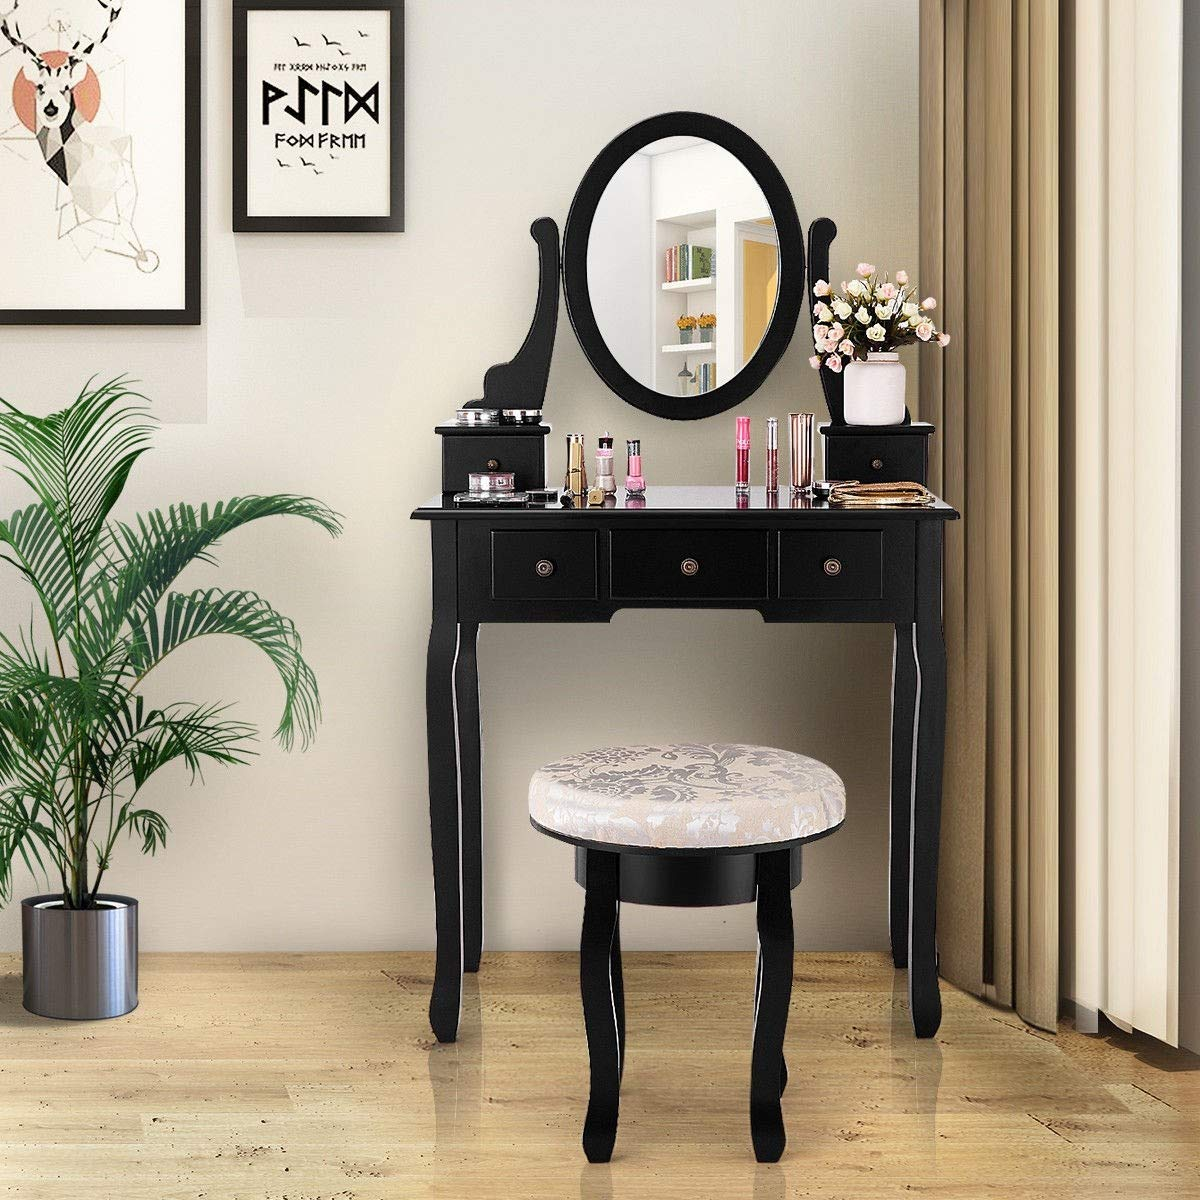 Kanizz Mirror Vanity Table Set Vintage Style Cushioned Stool 5 Drawers Accessories Hair Care Dressing Nail Polish Equipment Cosmmetic Jewelry Organizer Products